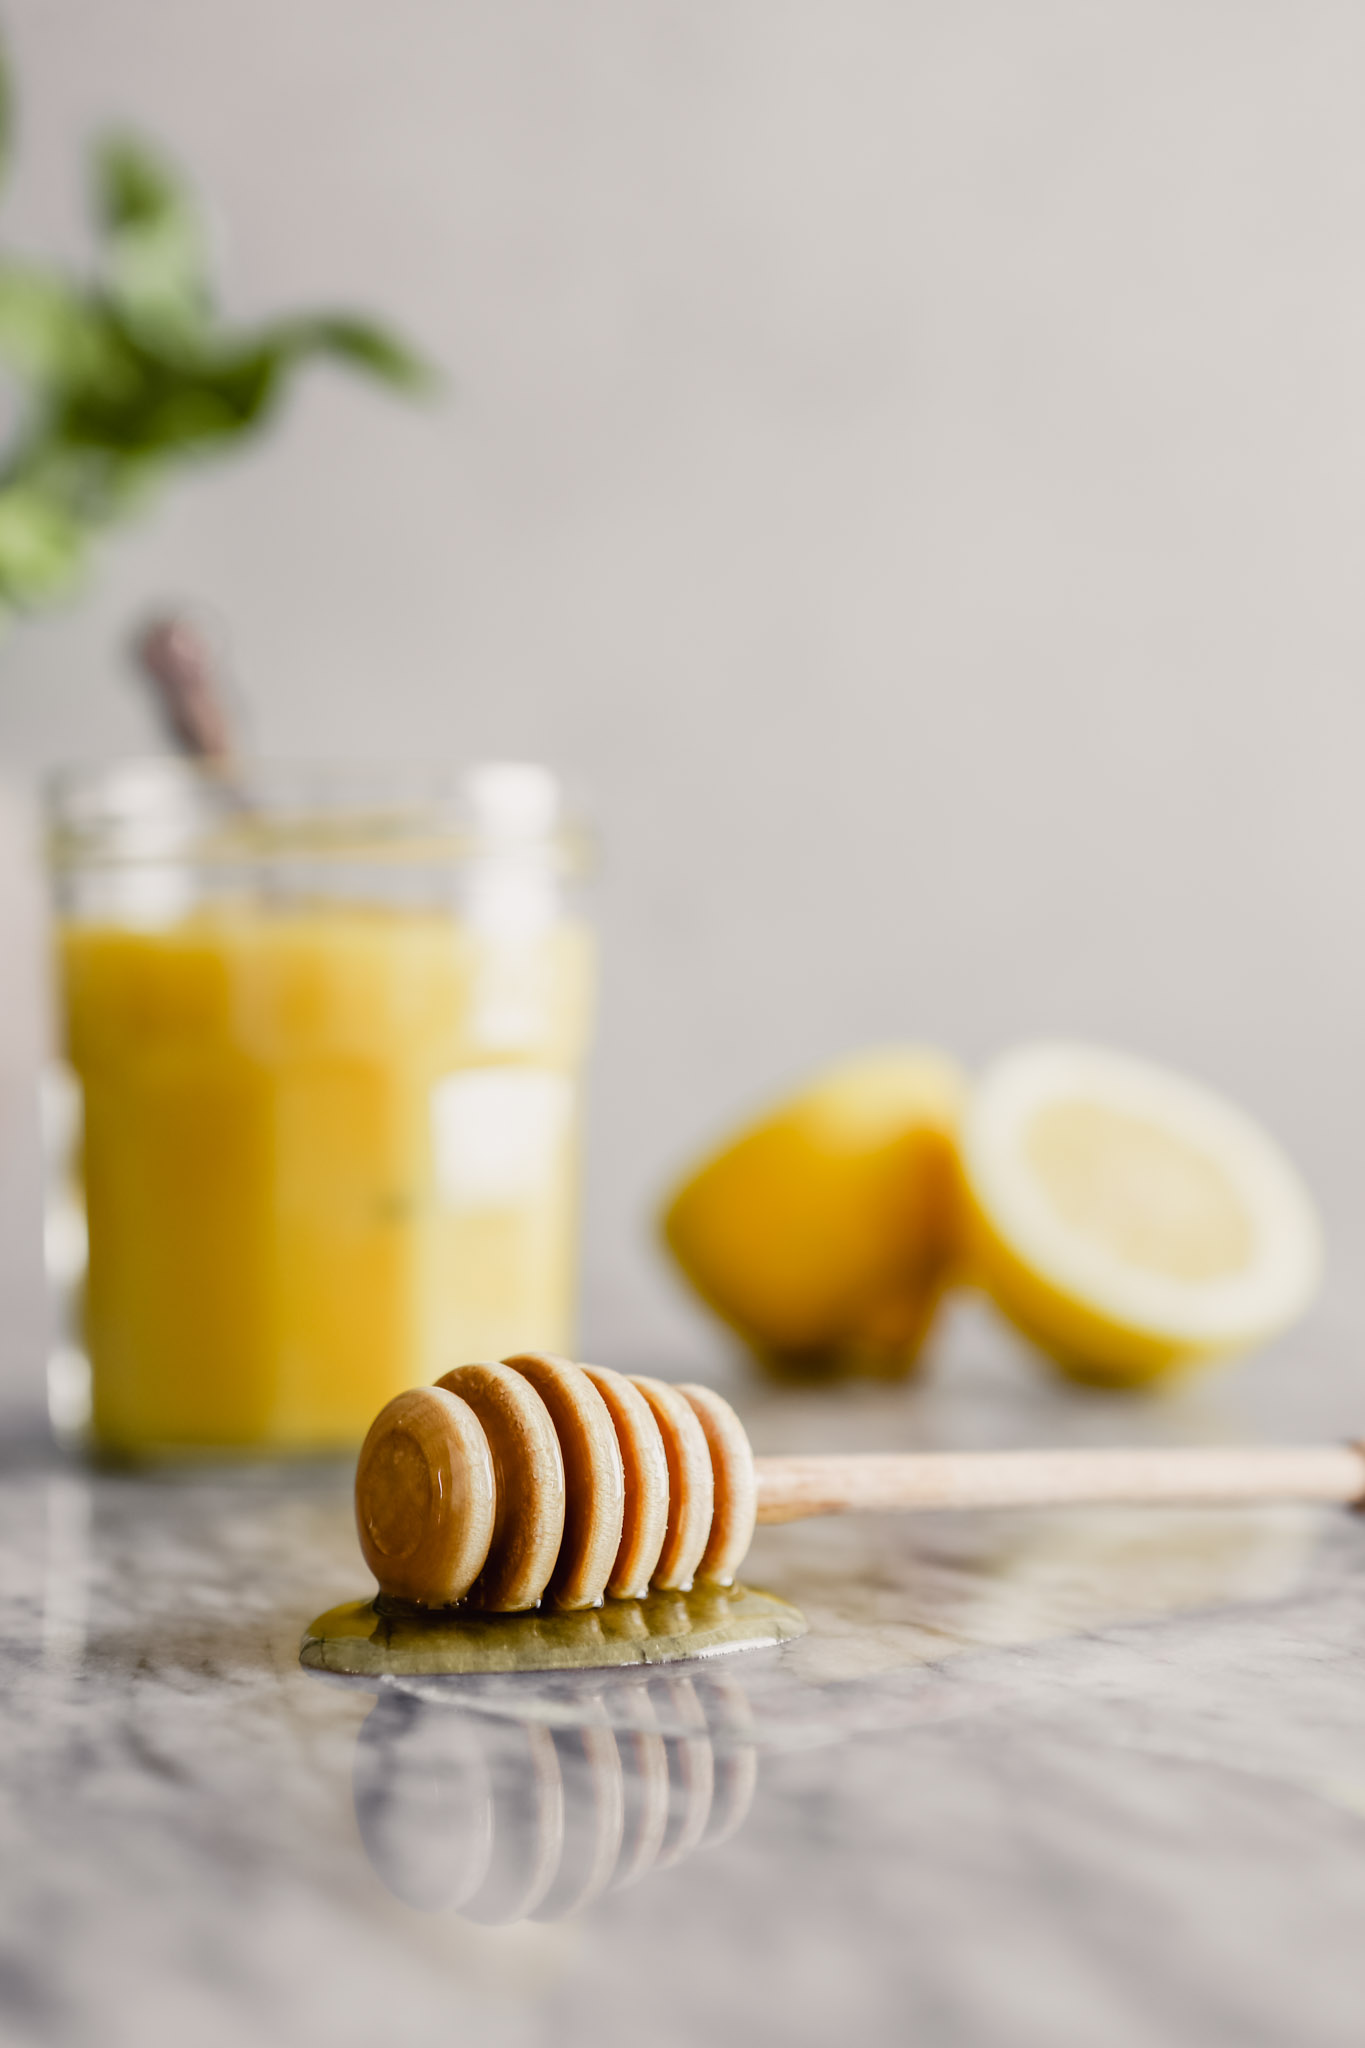 Photograph of a honey dipper let on a marble table with lemon curd set in the background